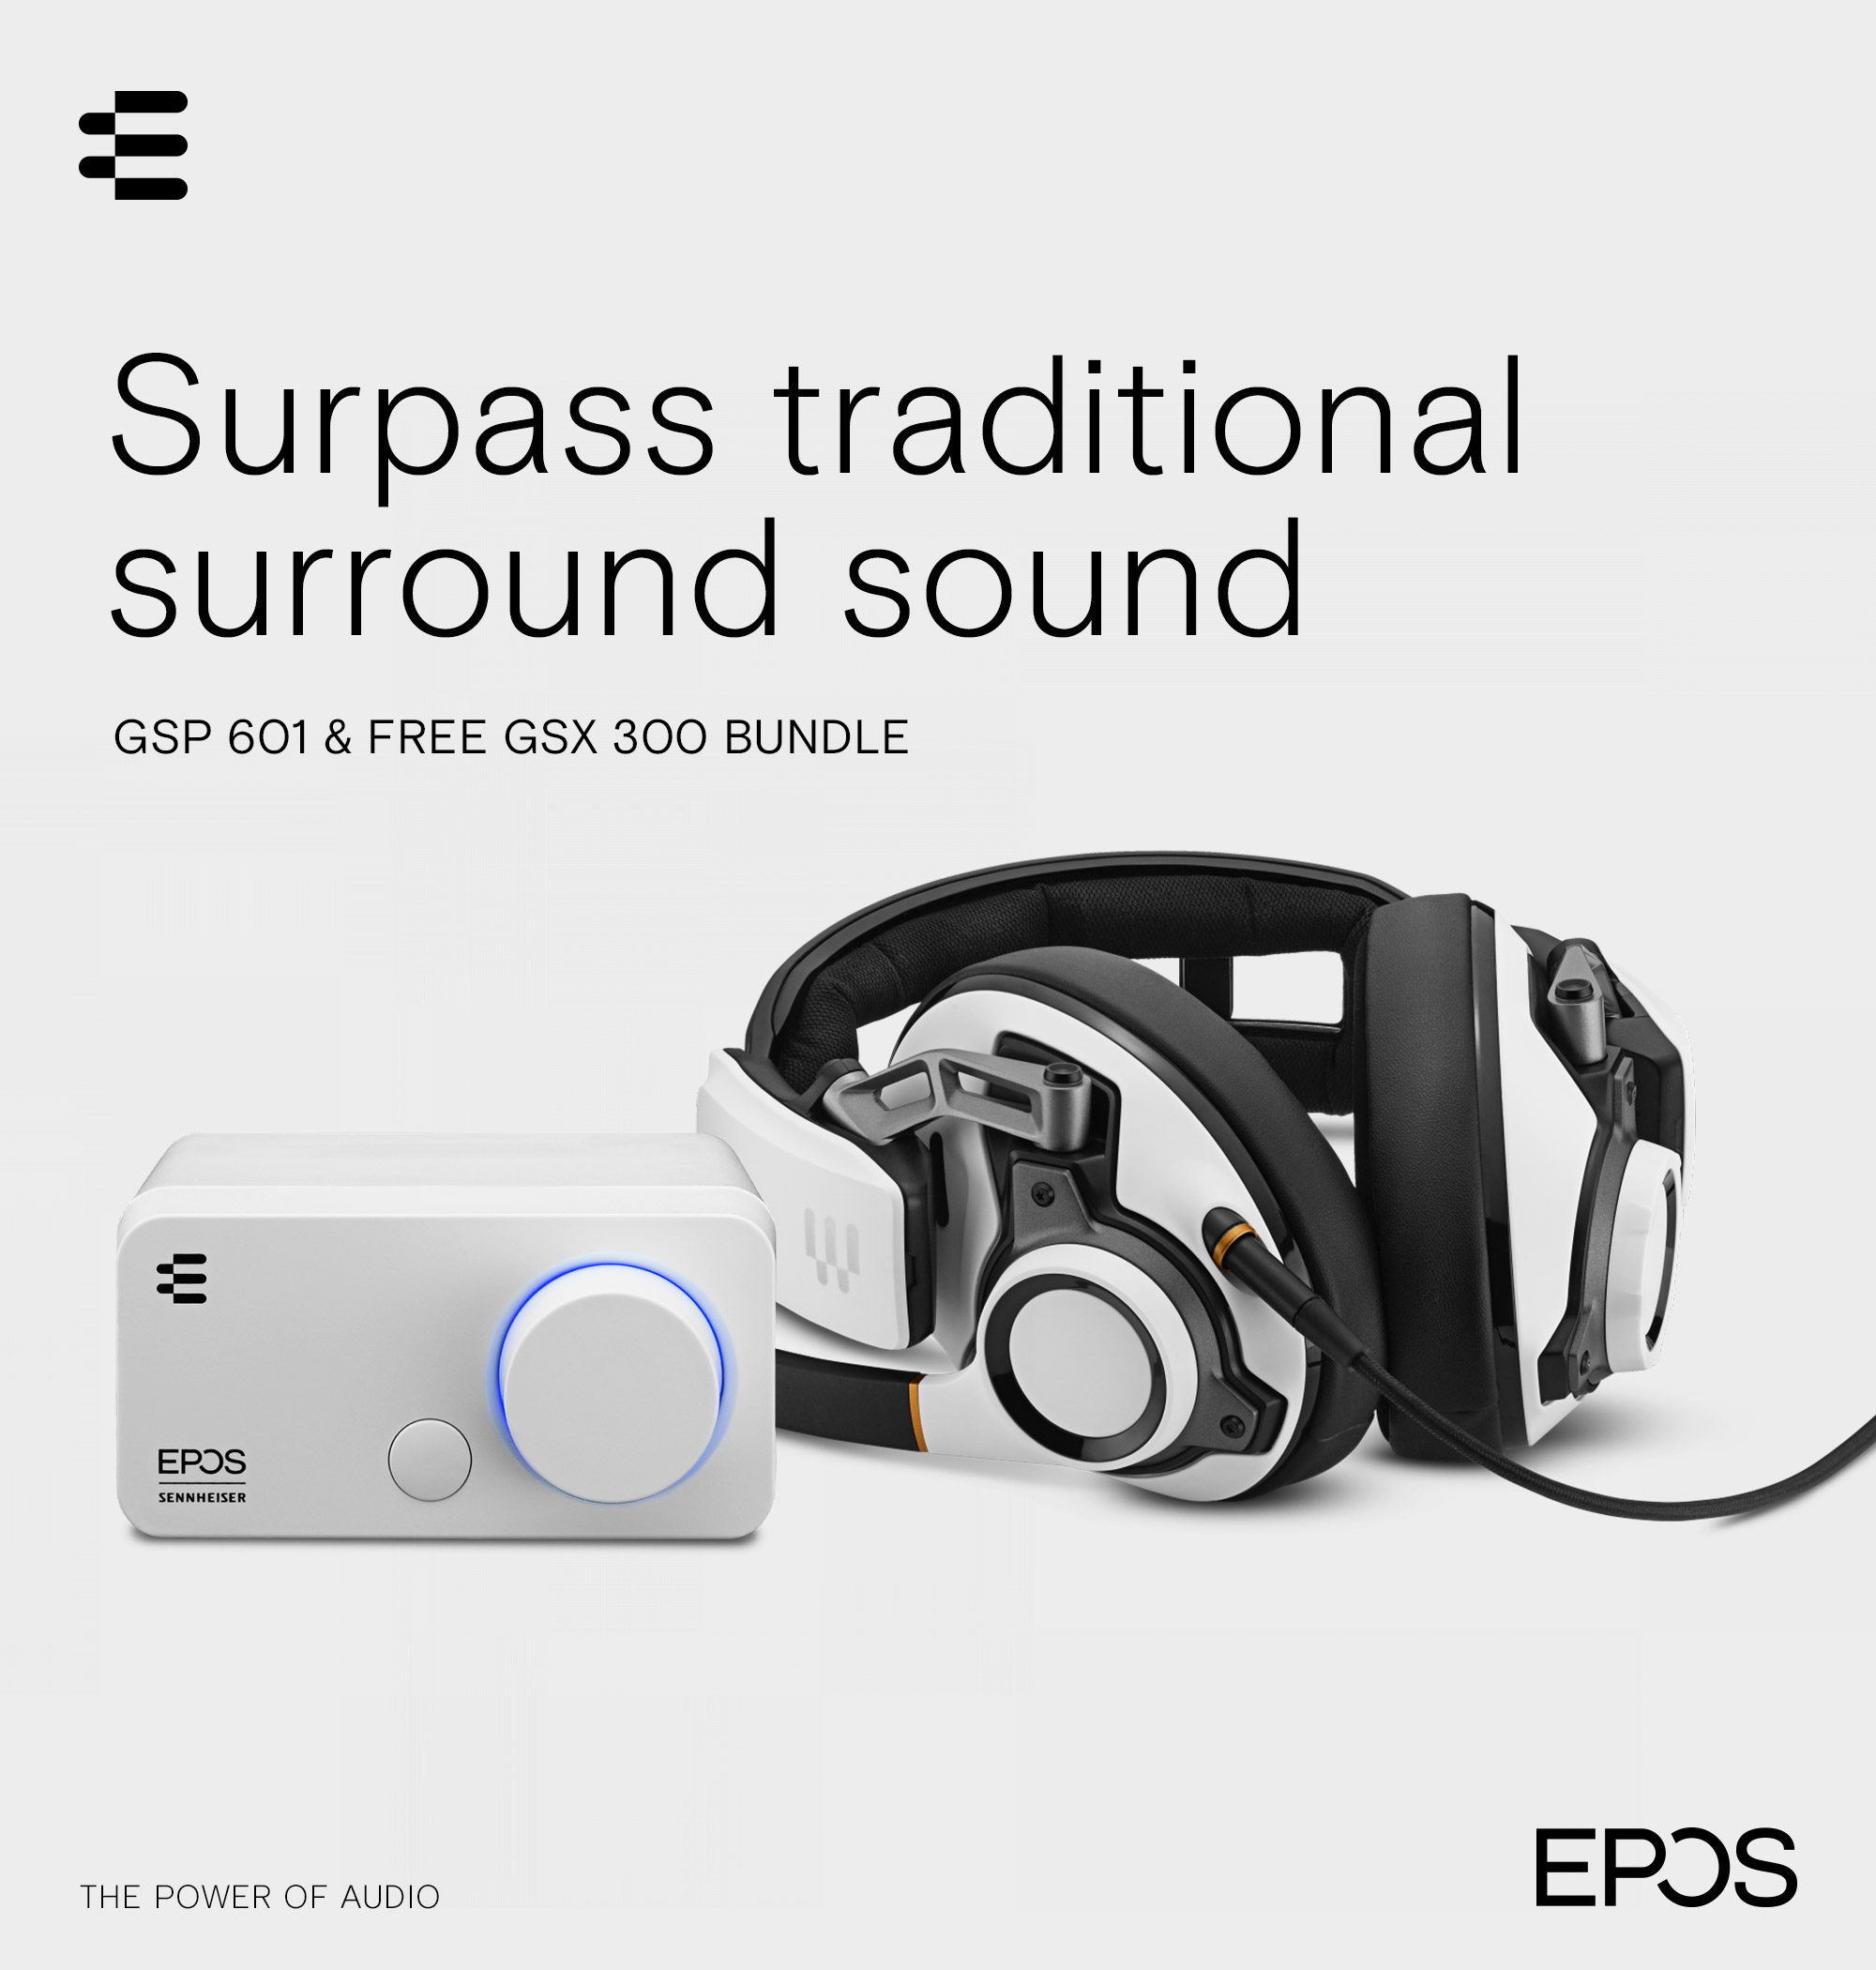 A large marketing image providing additional information about the product EPOS Upgrade Your Audio Bundle - Additional alt info not provided